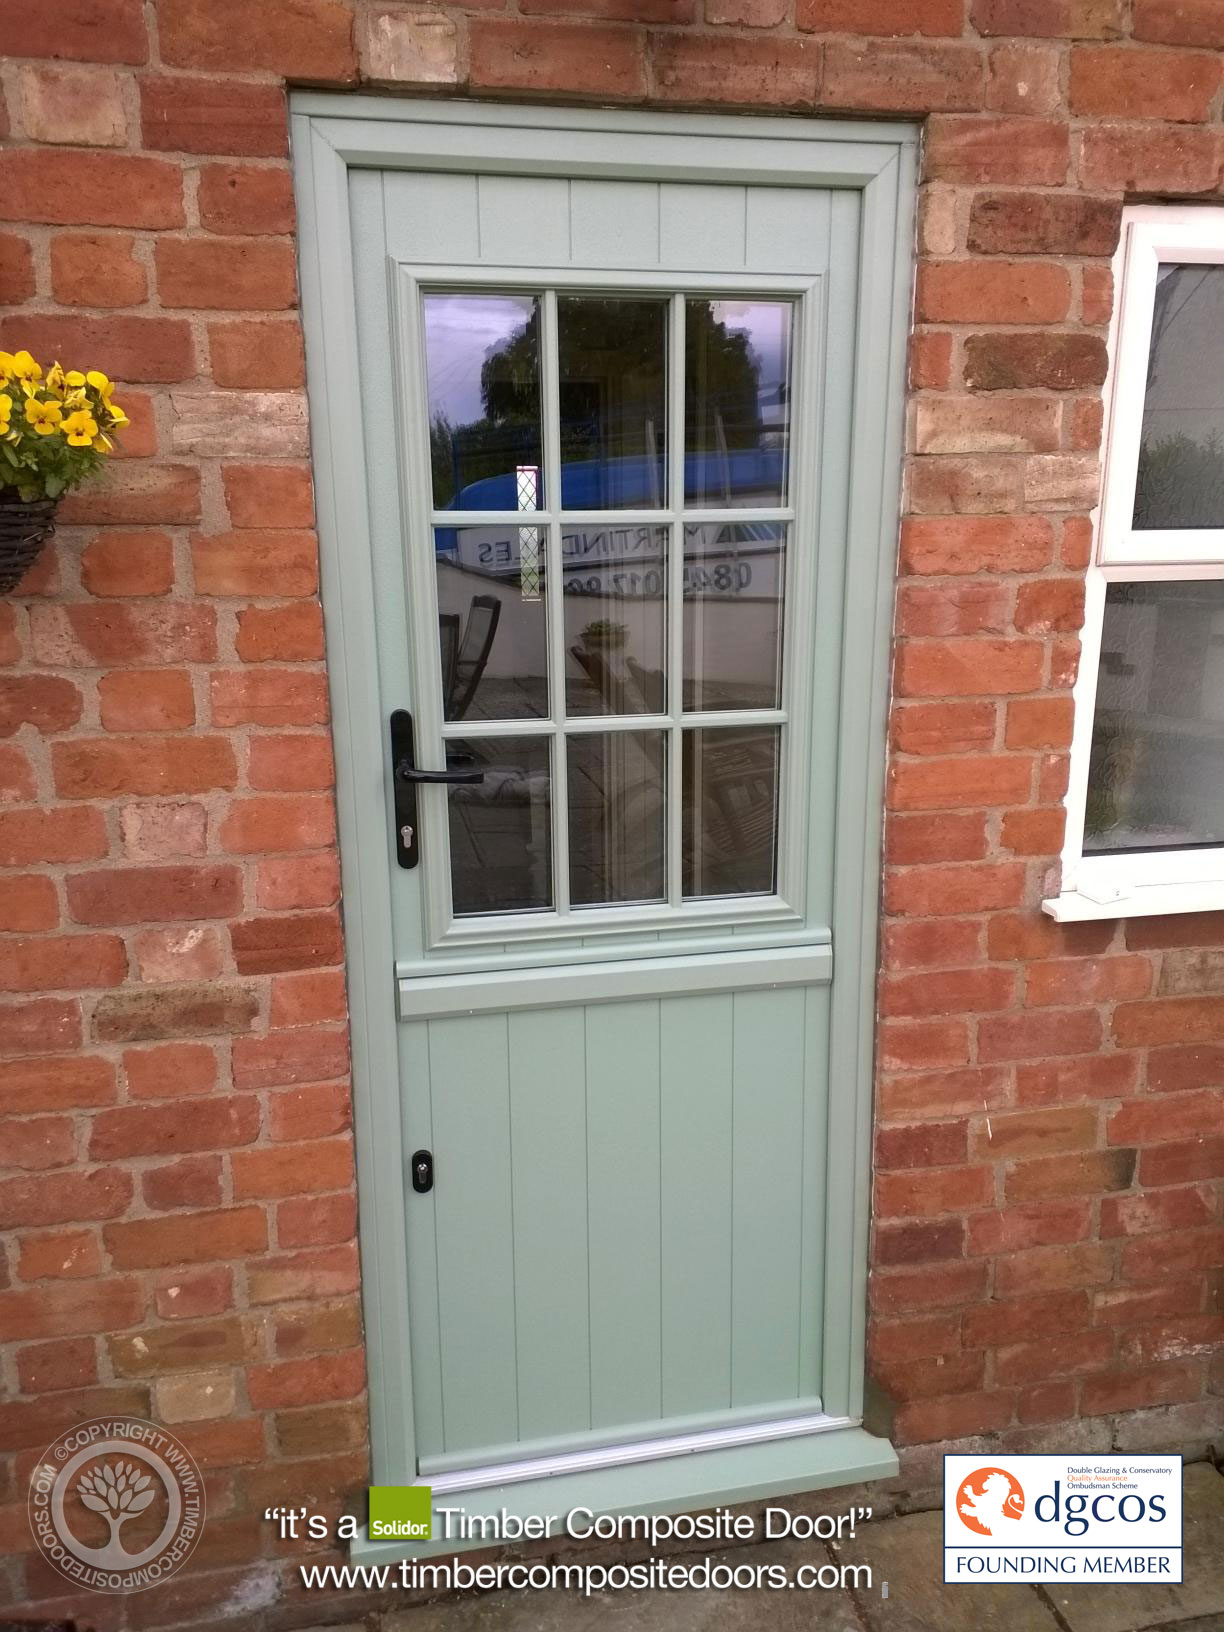 Stable Door Security No Probs Timber Composite Doors Blog